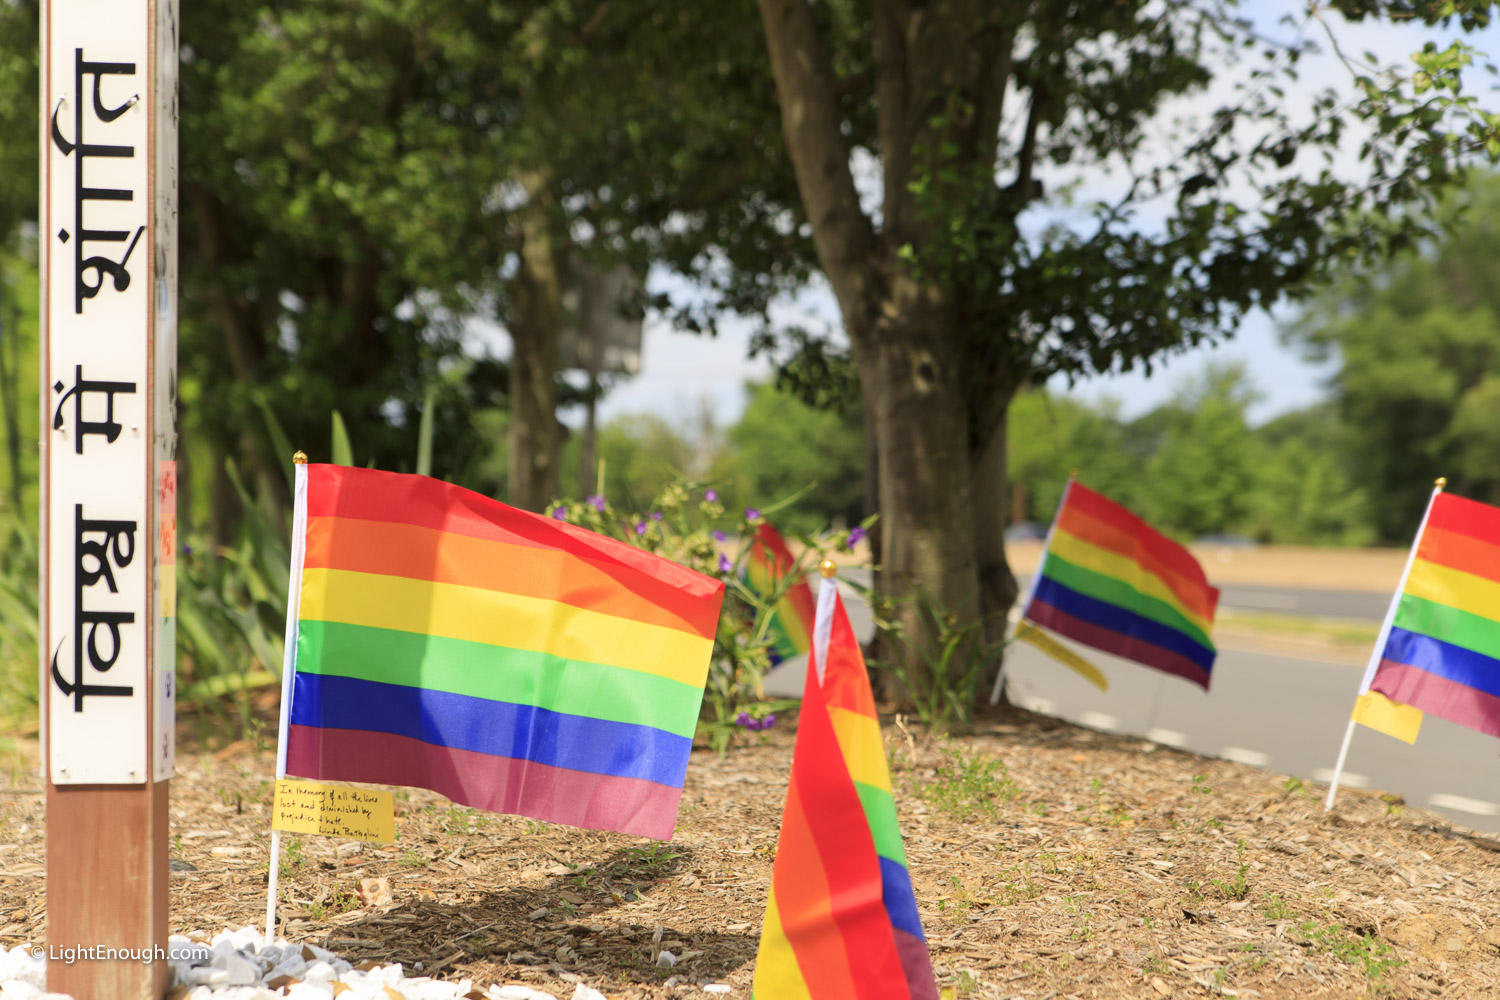 Pride flags at Pride Flag day on Saturday June 3, 2017. Photo by John St Hilaire/LightEnough.com.